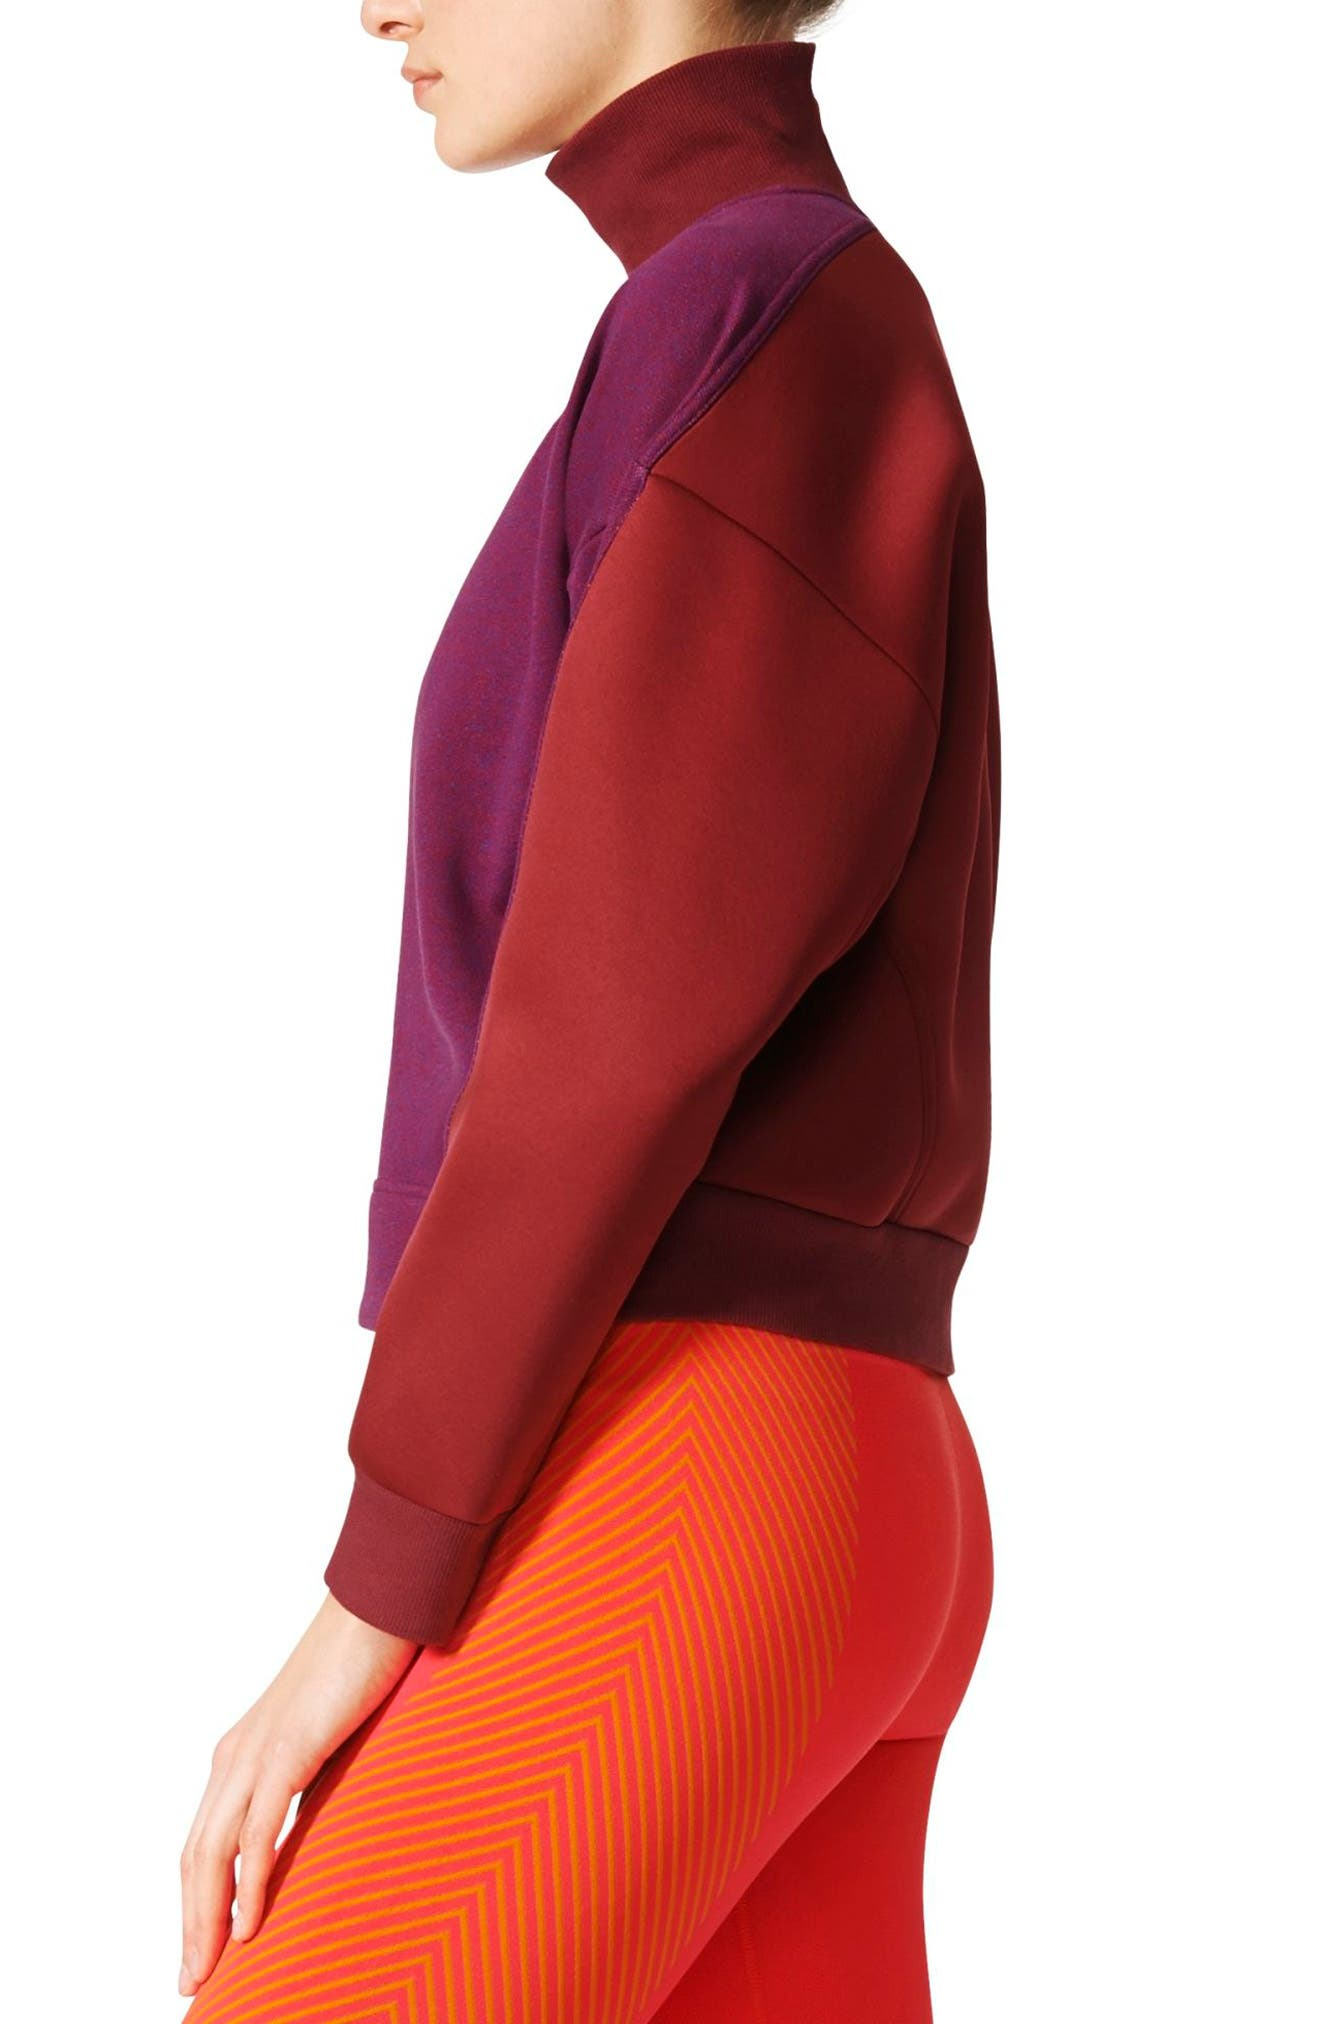 Yoga Turtleneck Sweatshirt,                             Alternate thumbnail 3, color,                             599